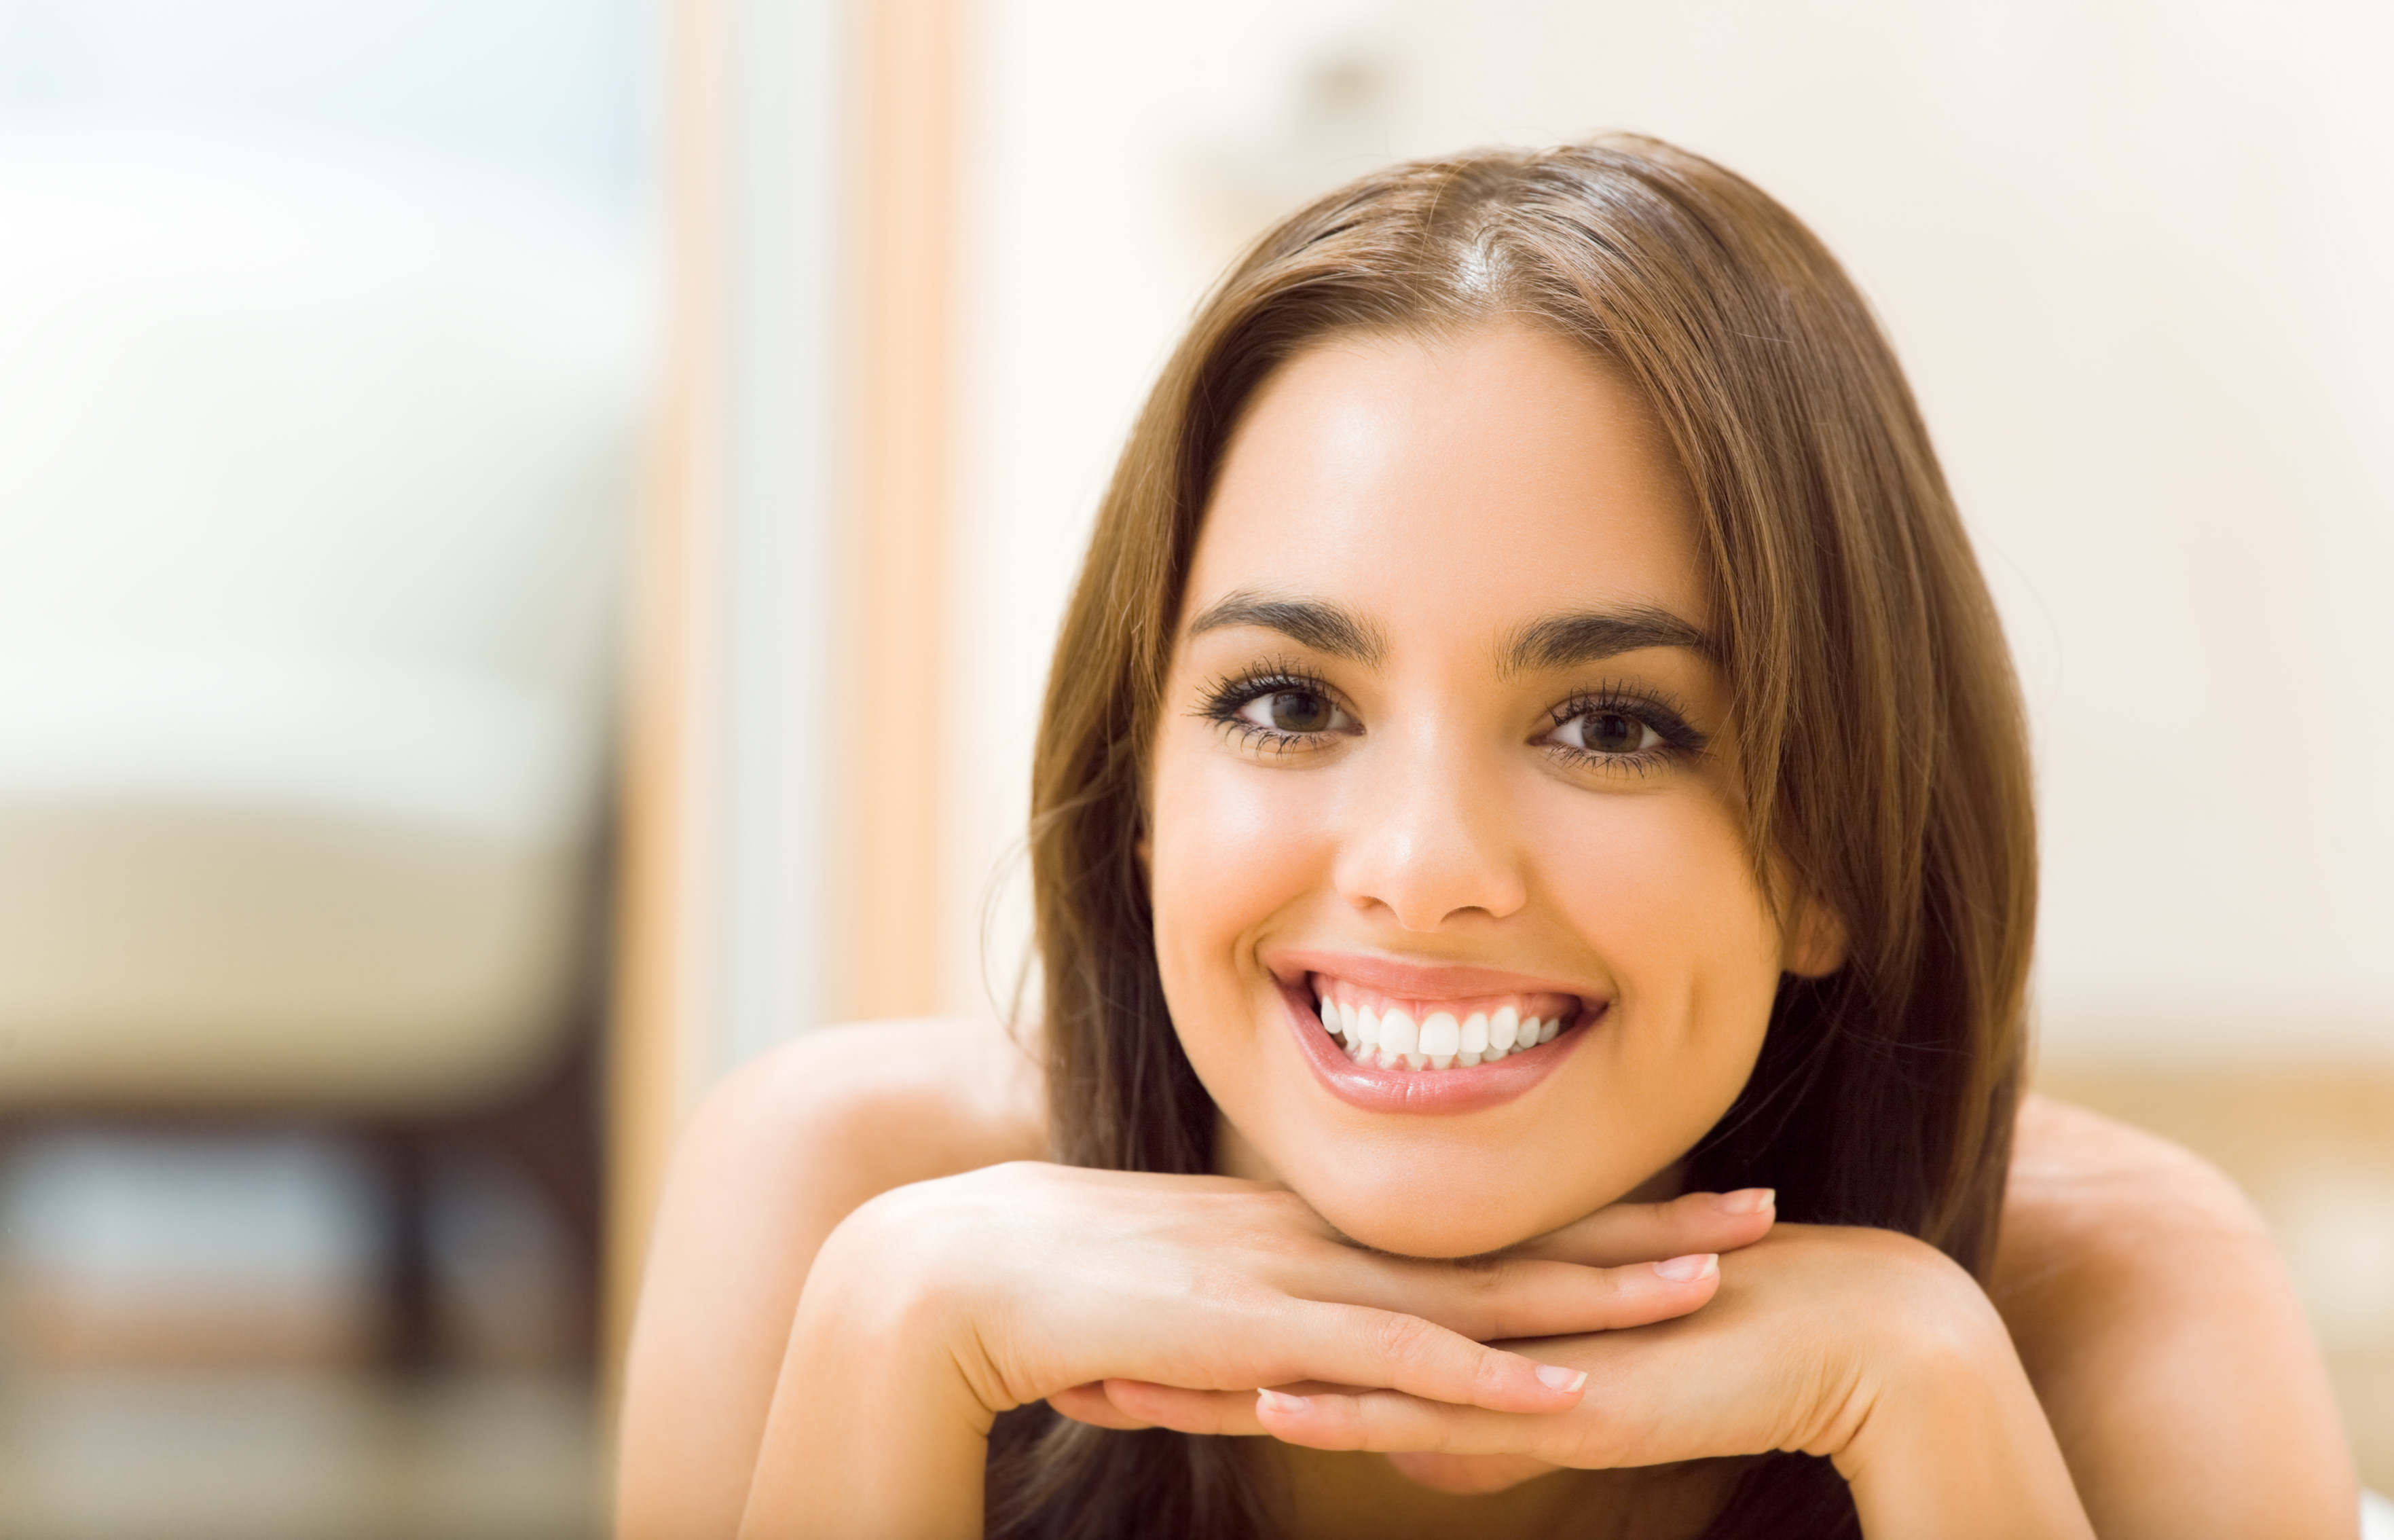 Look for the best dental bridges & crown dental experts in Winston hill and Pendle hill who can give you a perfect smile.